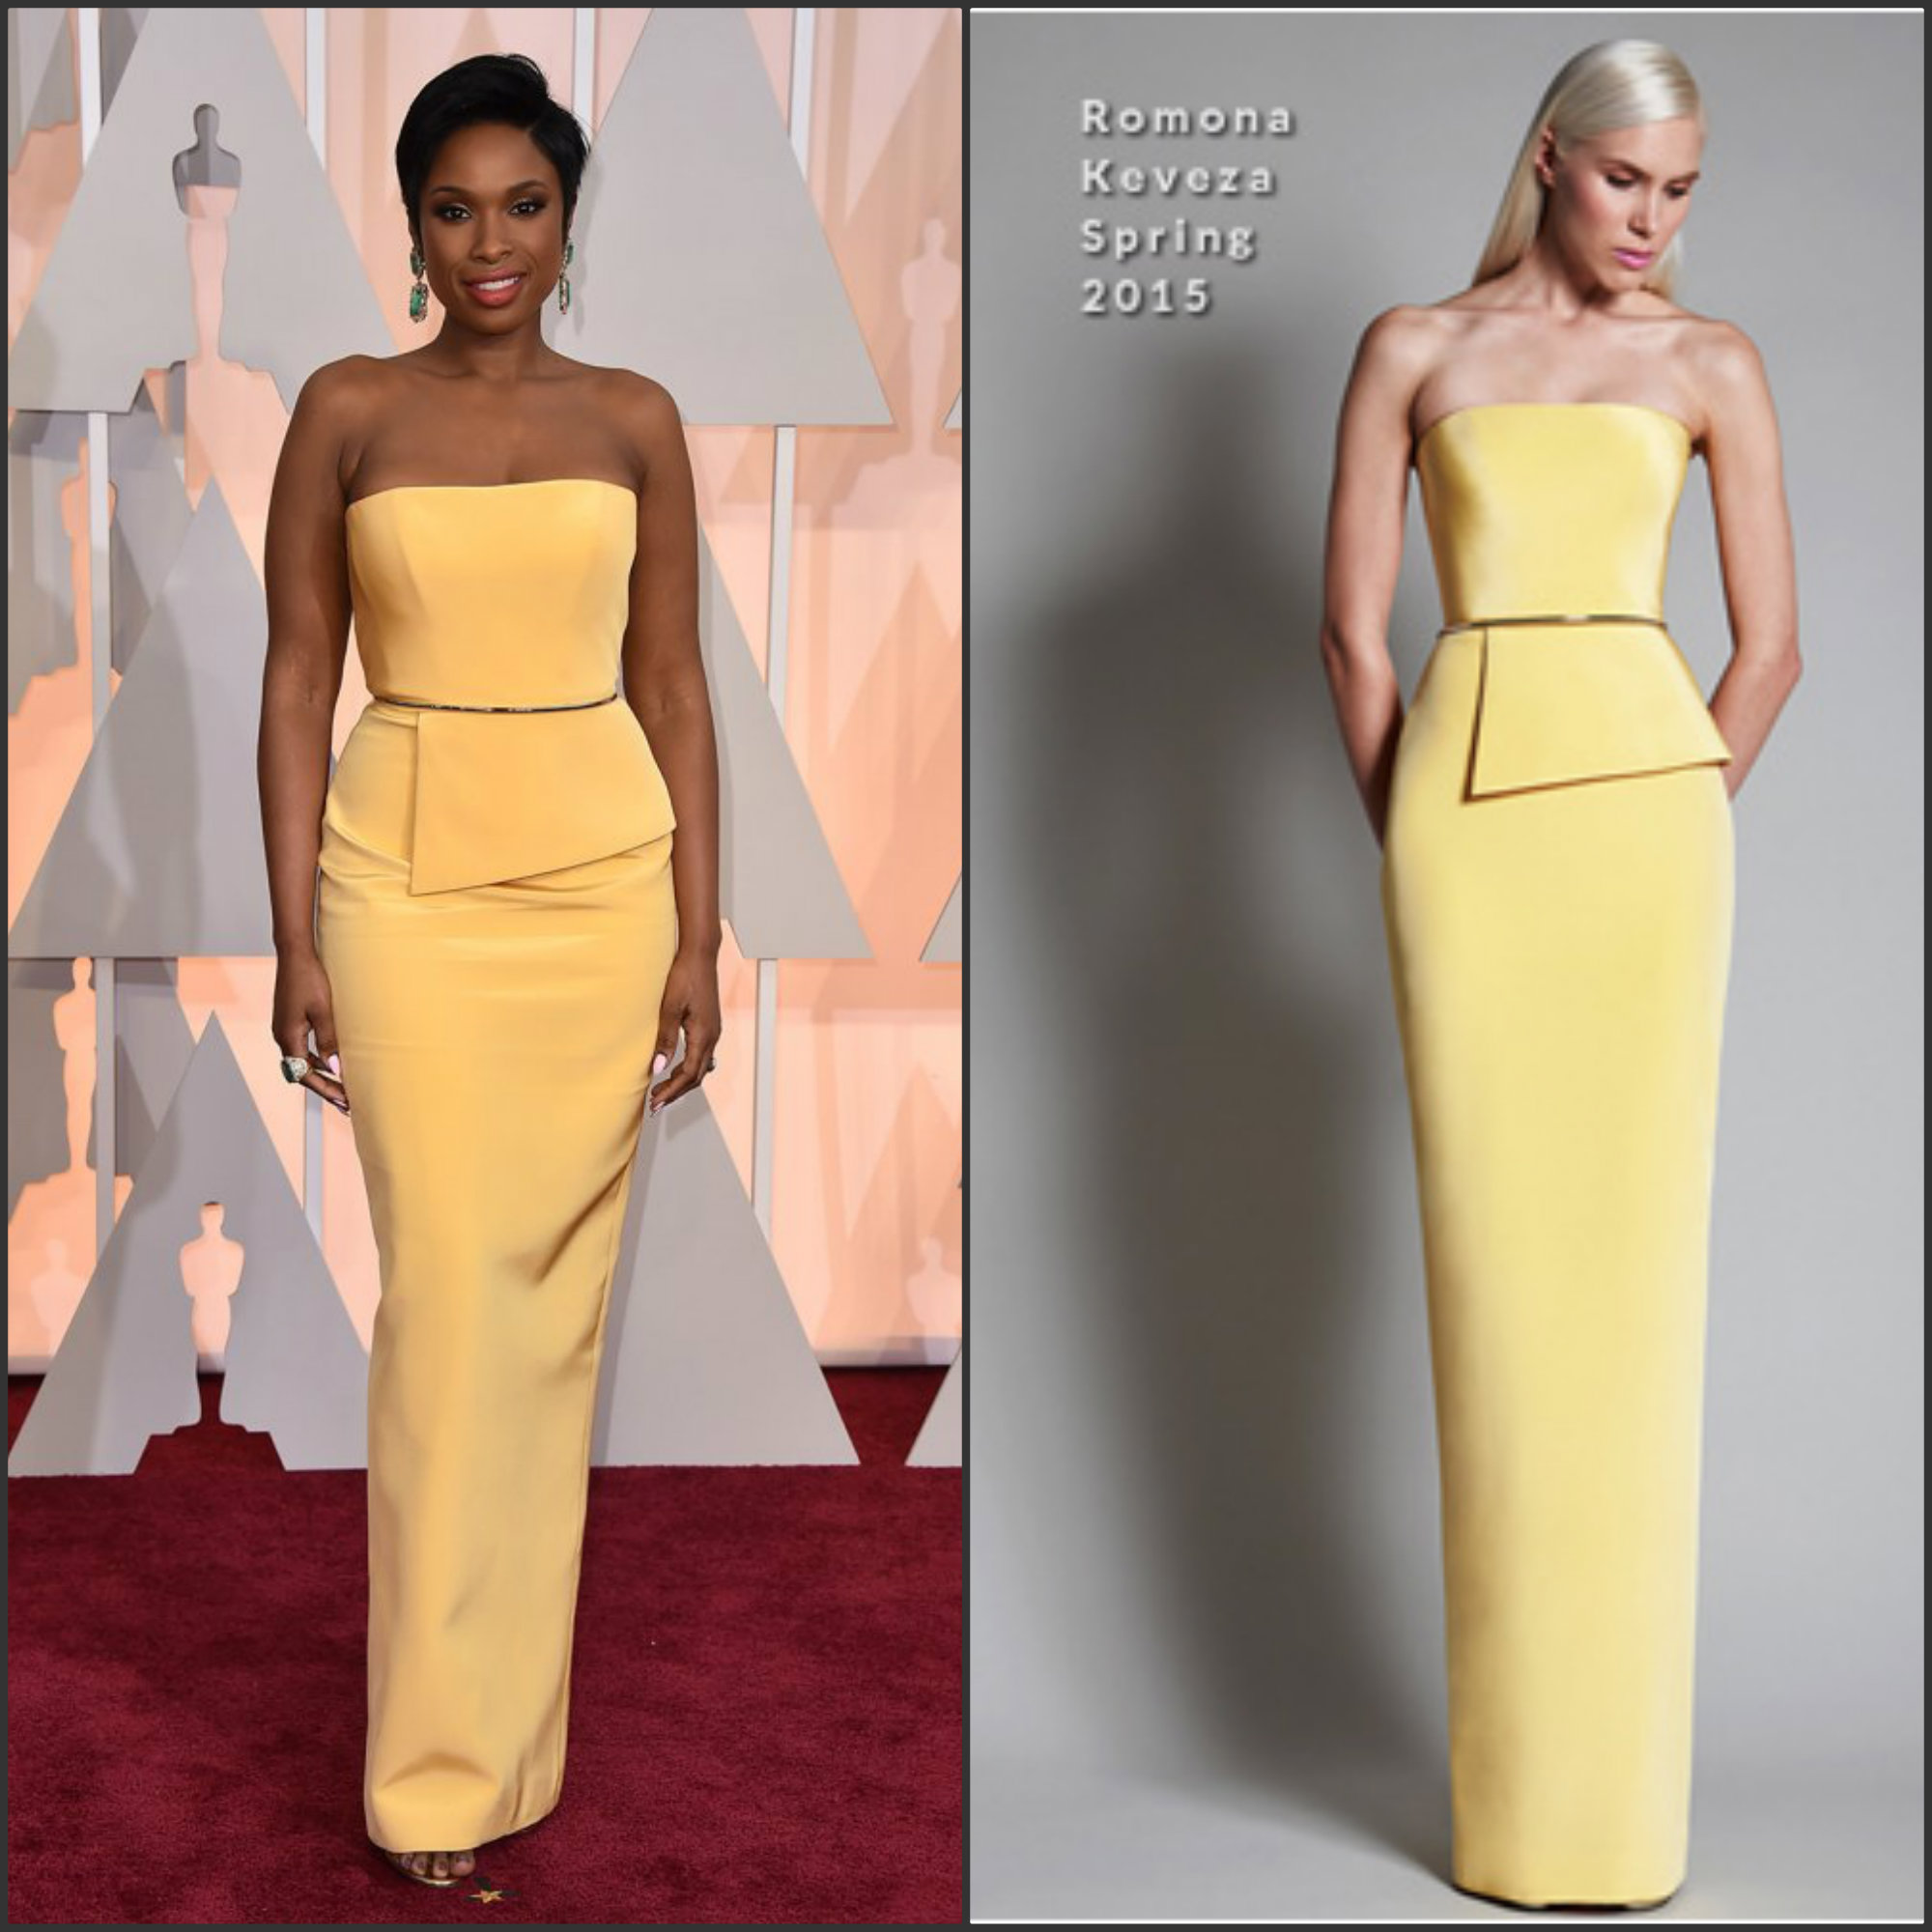 Jennifer-Hudson-in- Romona-Keveza-at-the-2015-Oscars